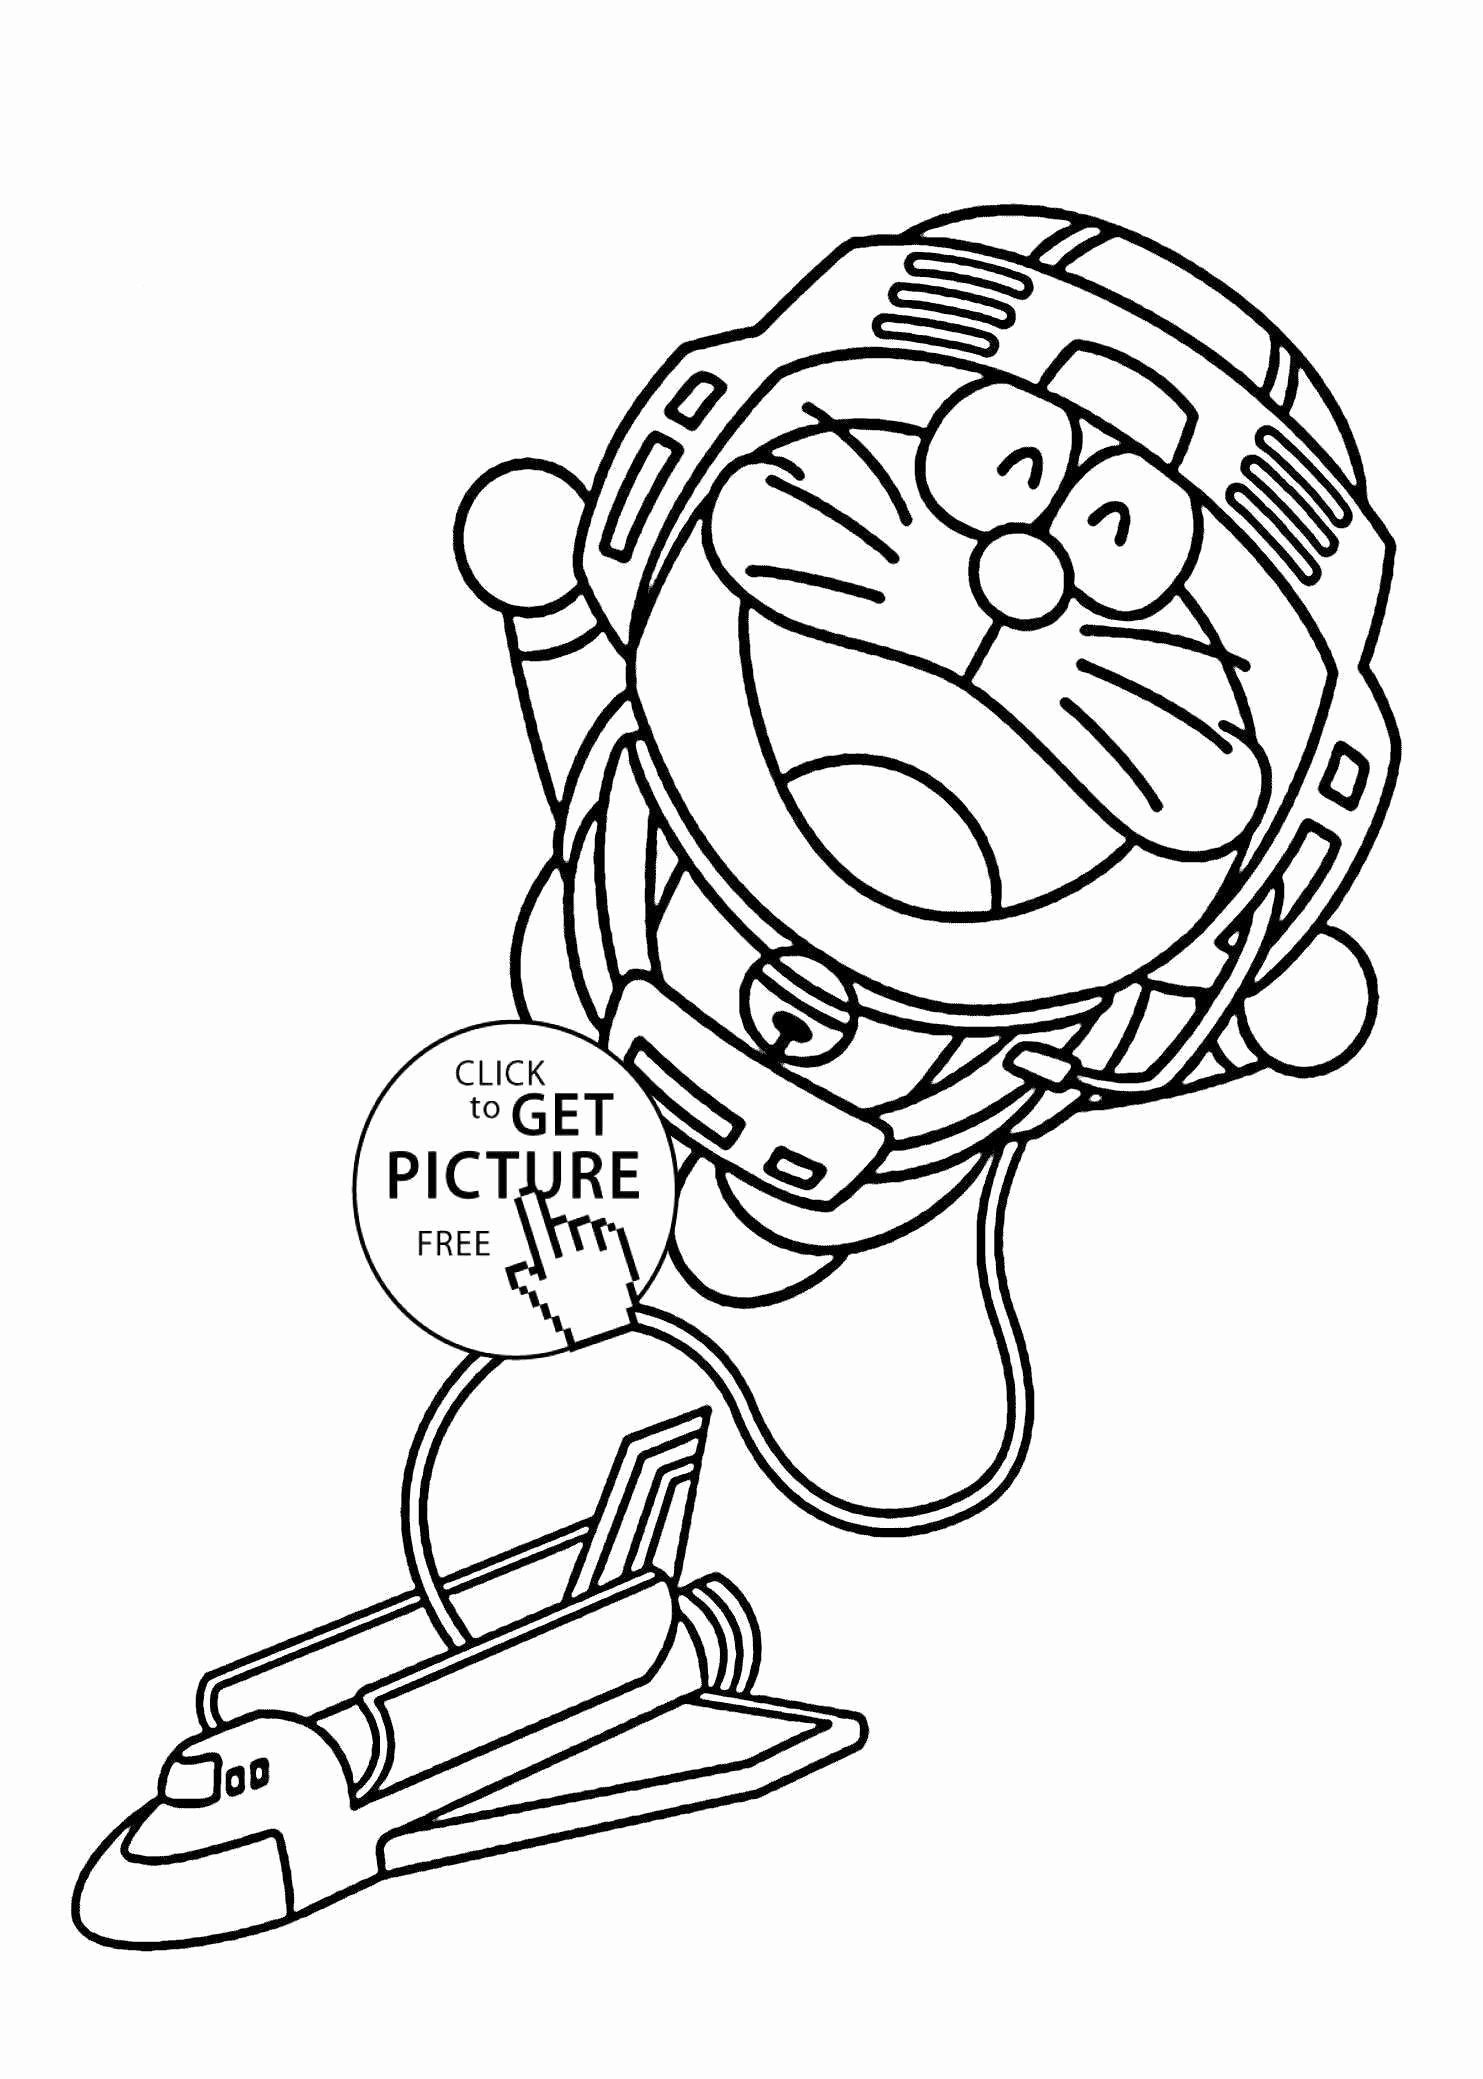 Free Hard Coloring Pages Inspirational Luxury Cute Coloring Pages Dark Disney Disney Lol